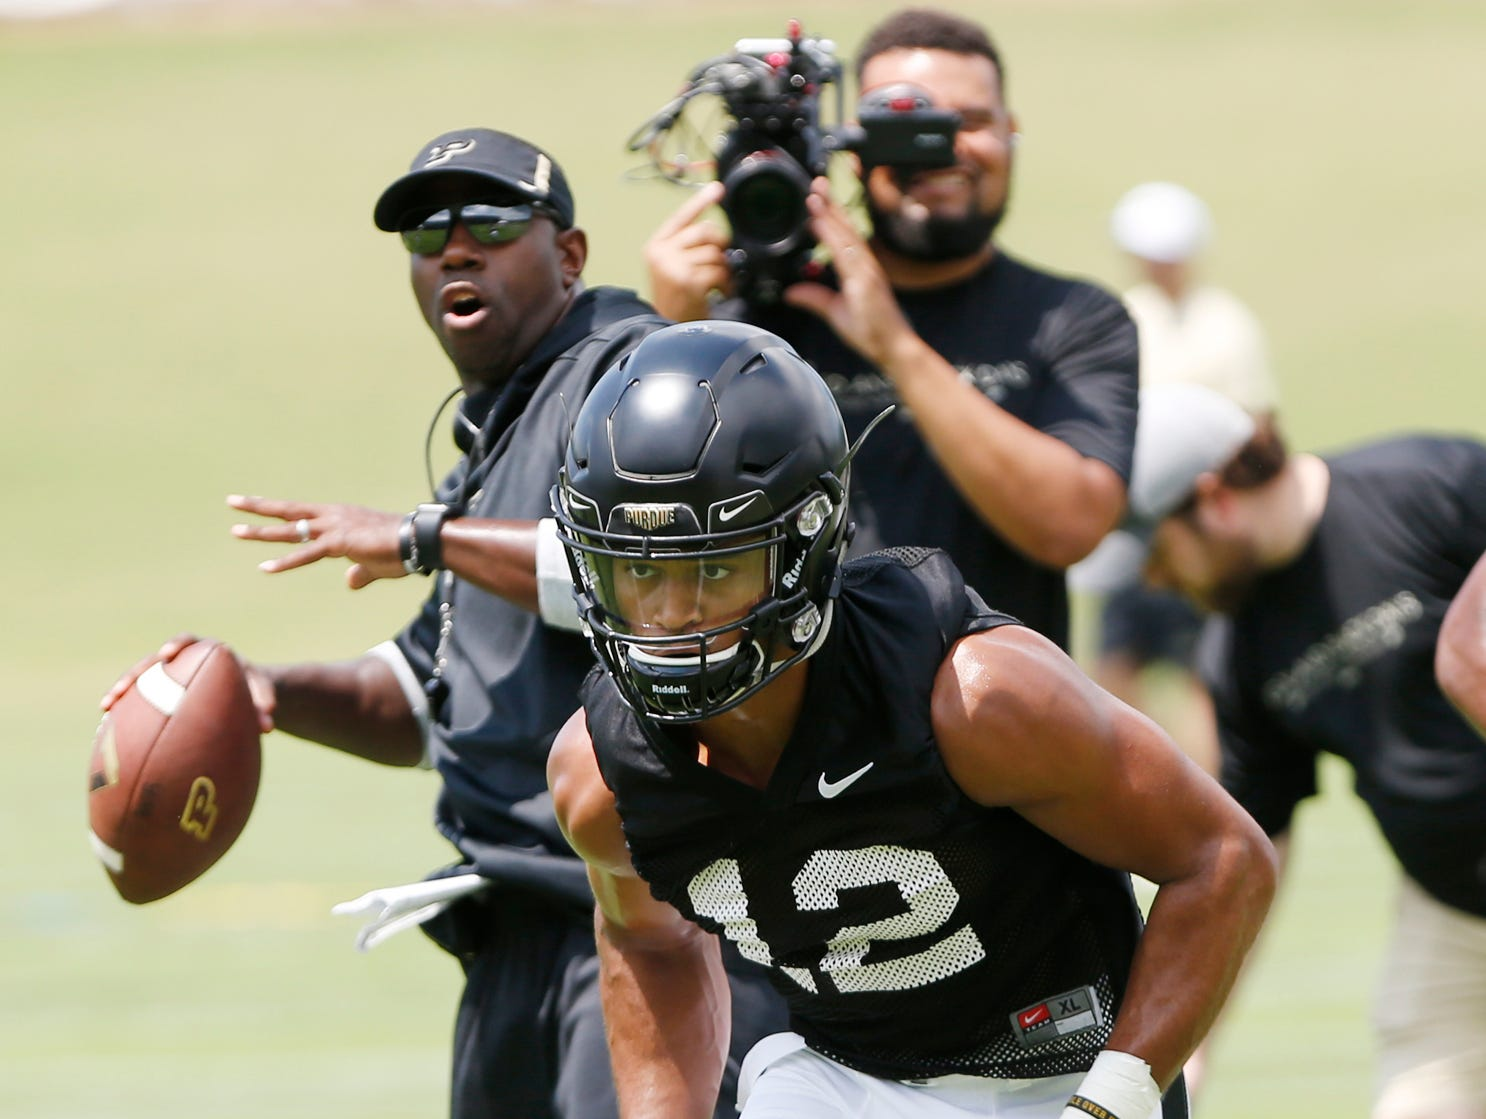 Wide receiver Jared Sparks runs a route as wide receivers coach and co-offensive coordinator Jamarcus Shephard (background) prepares to through the pass during football practice Wednesday, August 1, 2018, at Purdue.